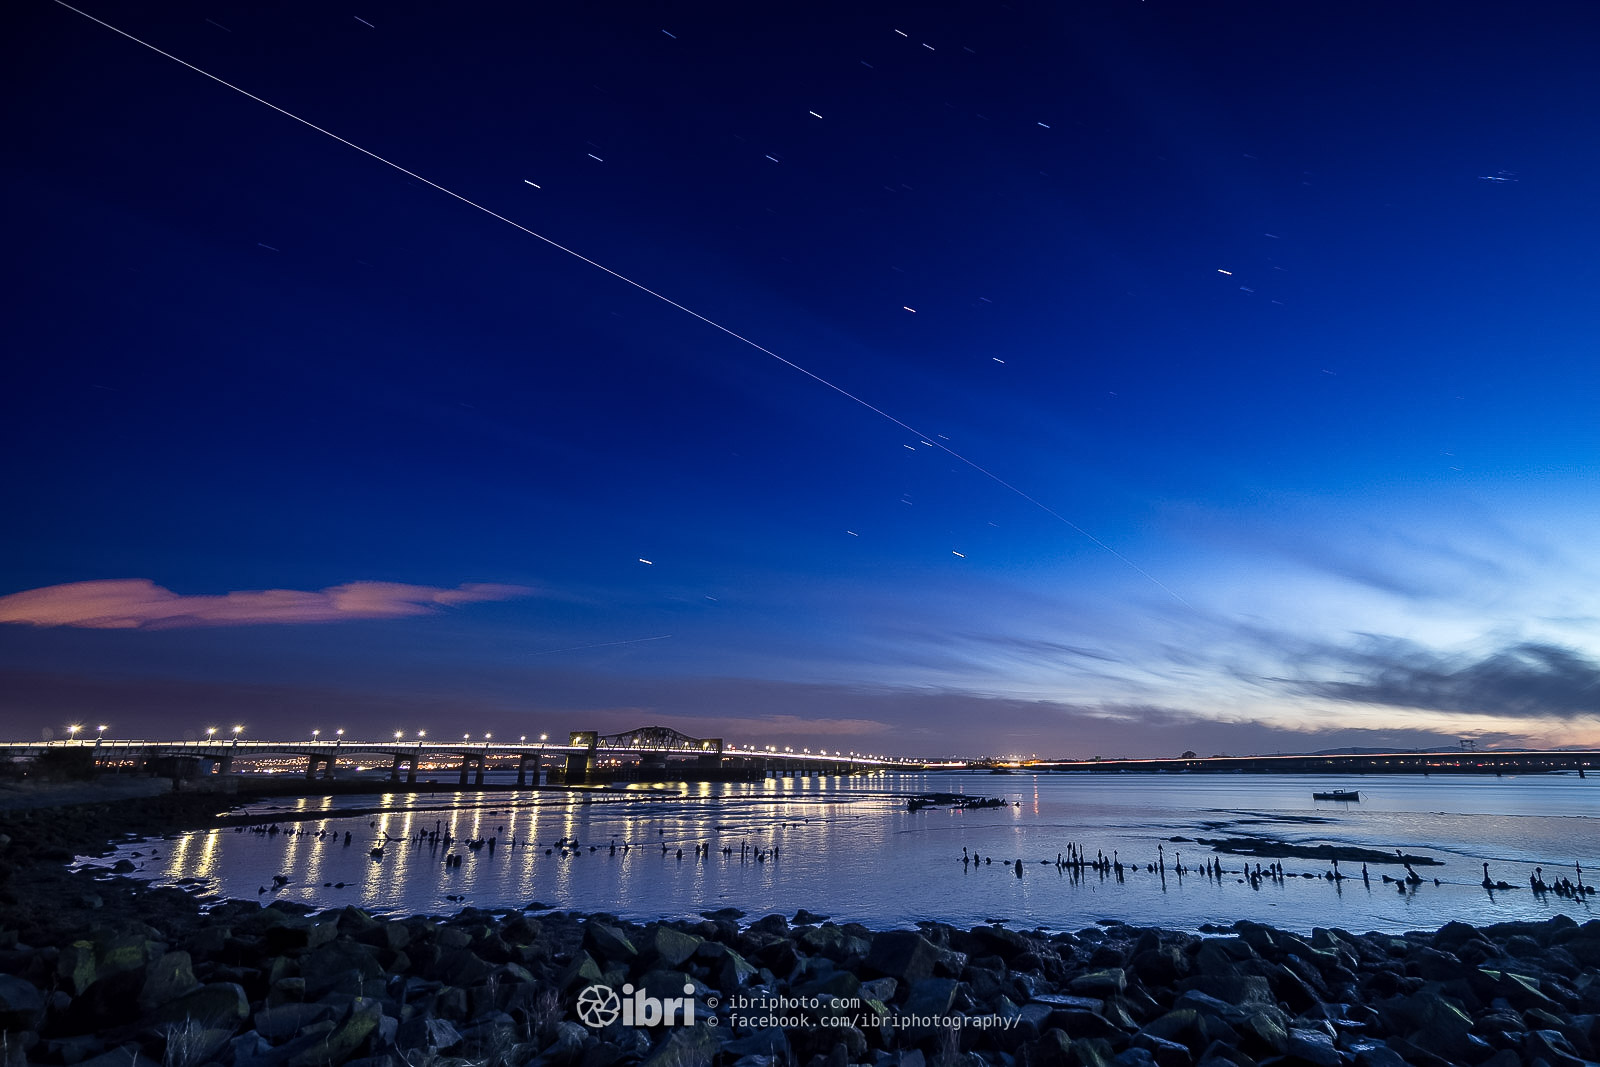 International Space Stations pass over the Kincardine Bridge on April Fool's Day.